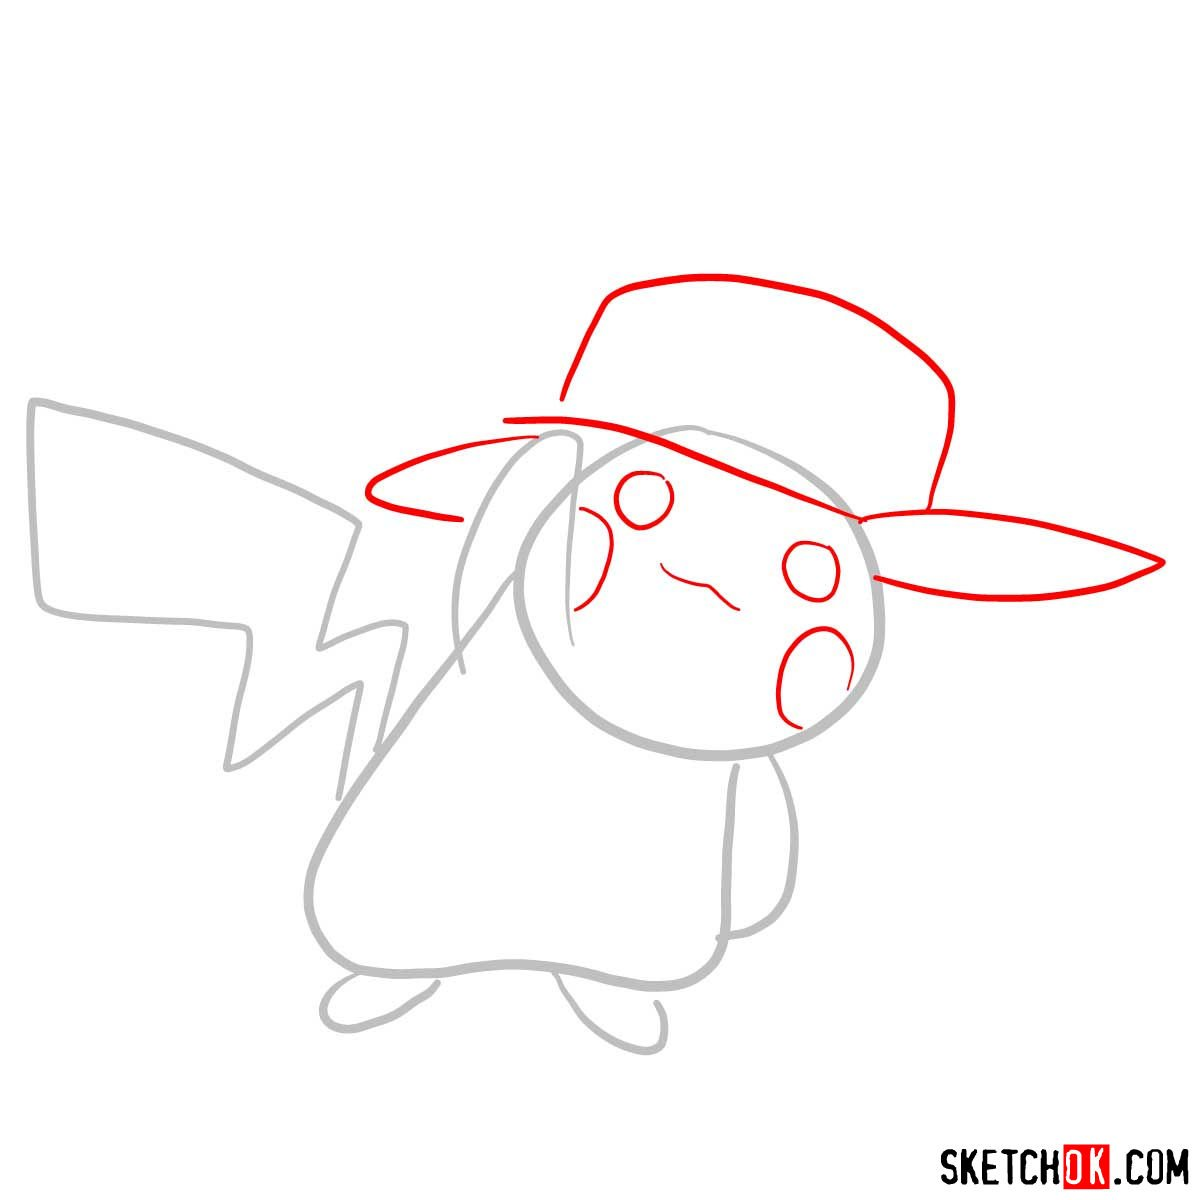 How to draw Pikachu in a cap with pokeball logo - step 02